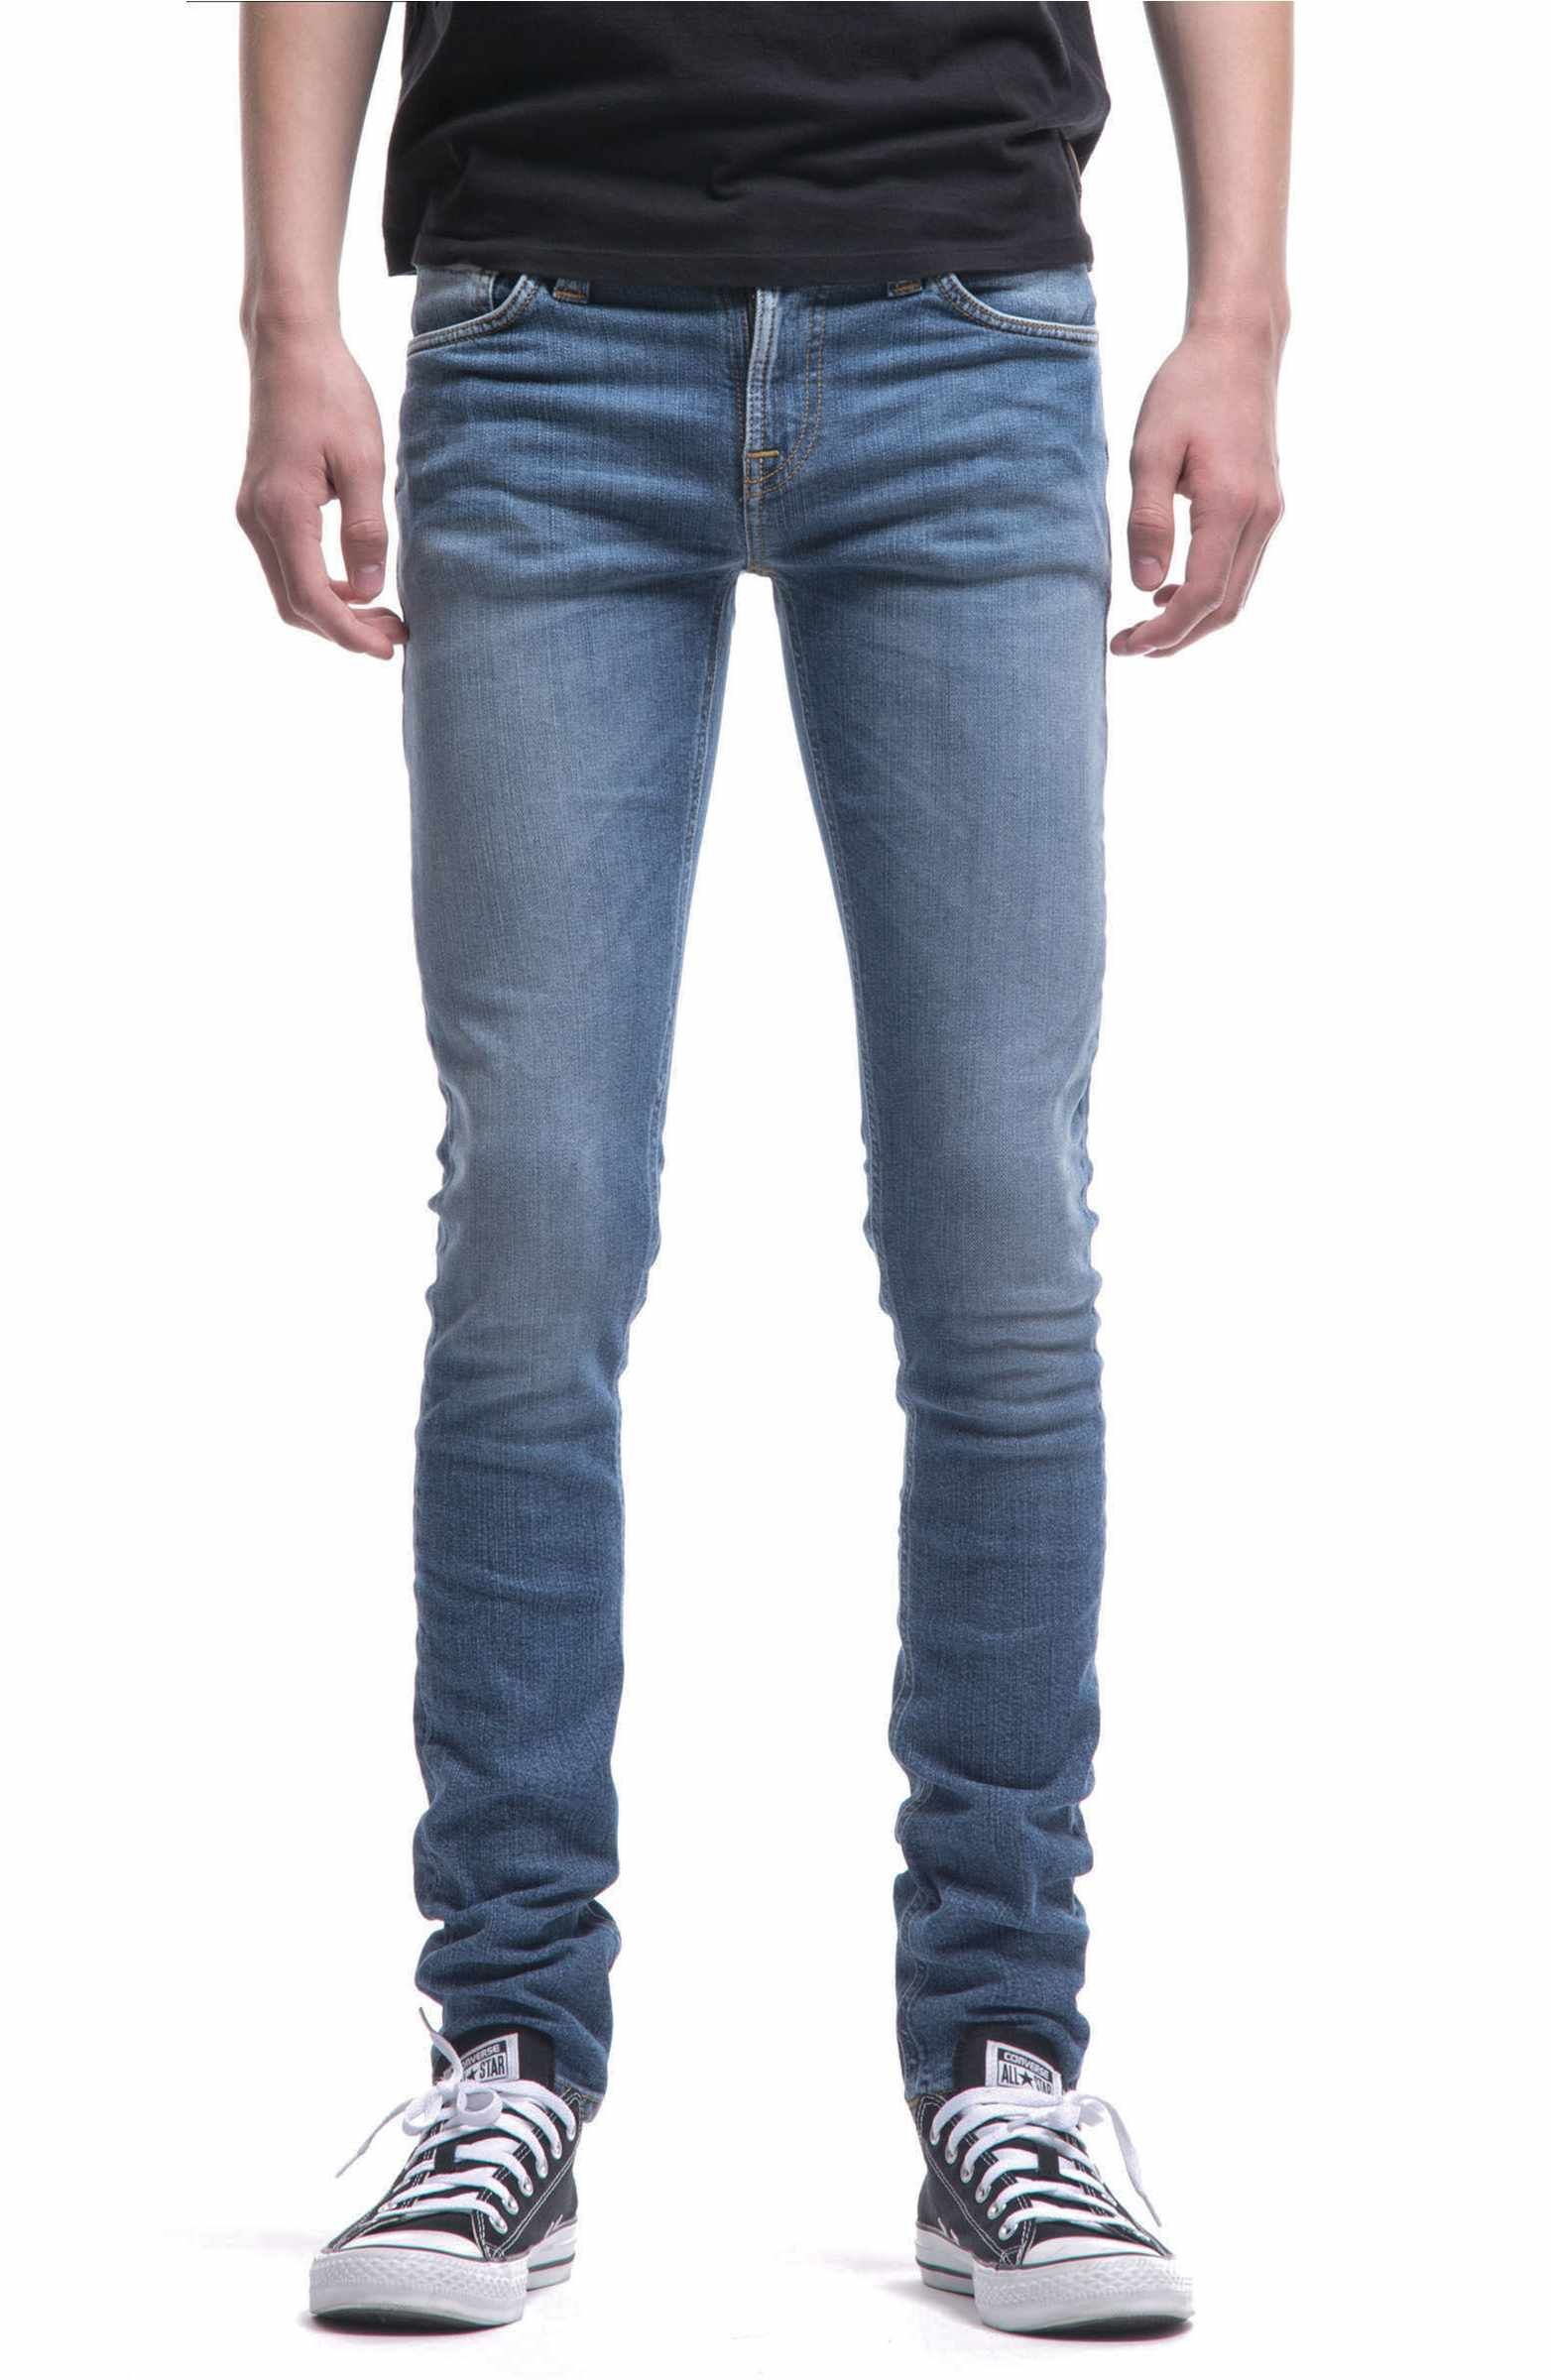 8d9a7781fb87 Nudie Jeans Tight Terry skinny fit jeans